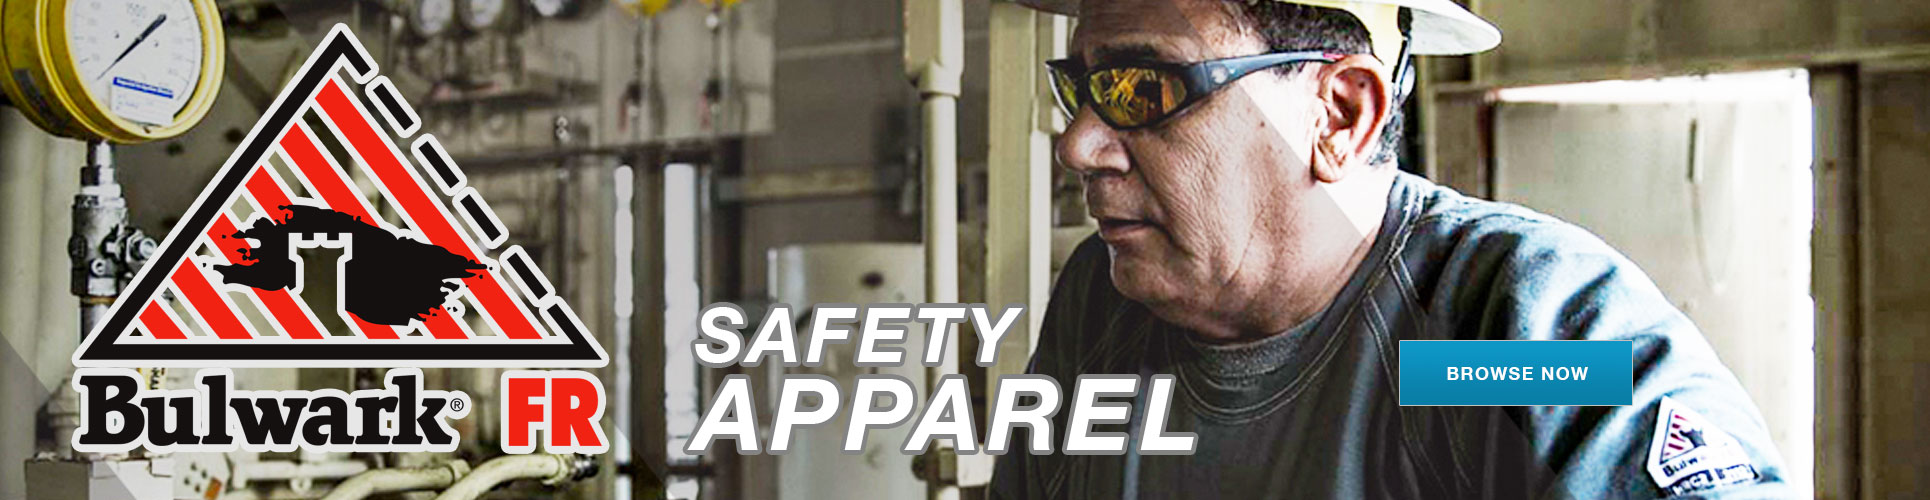 bulwark-safety-apparel.jpg